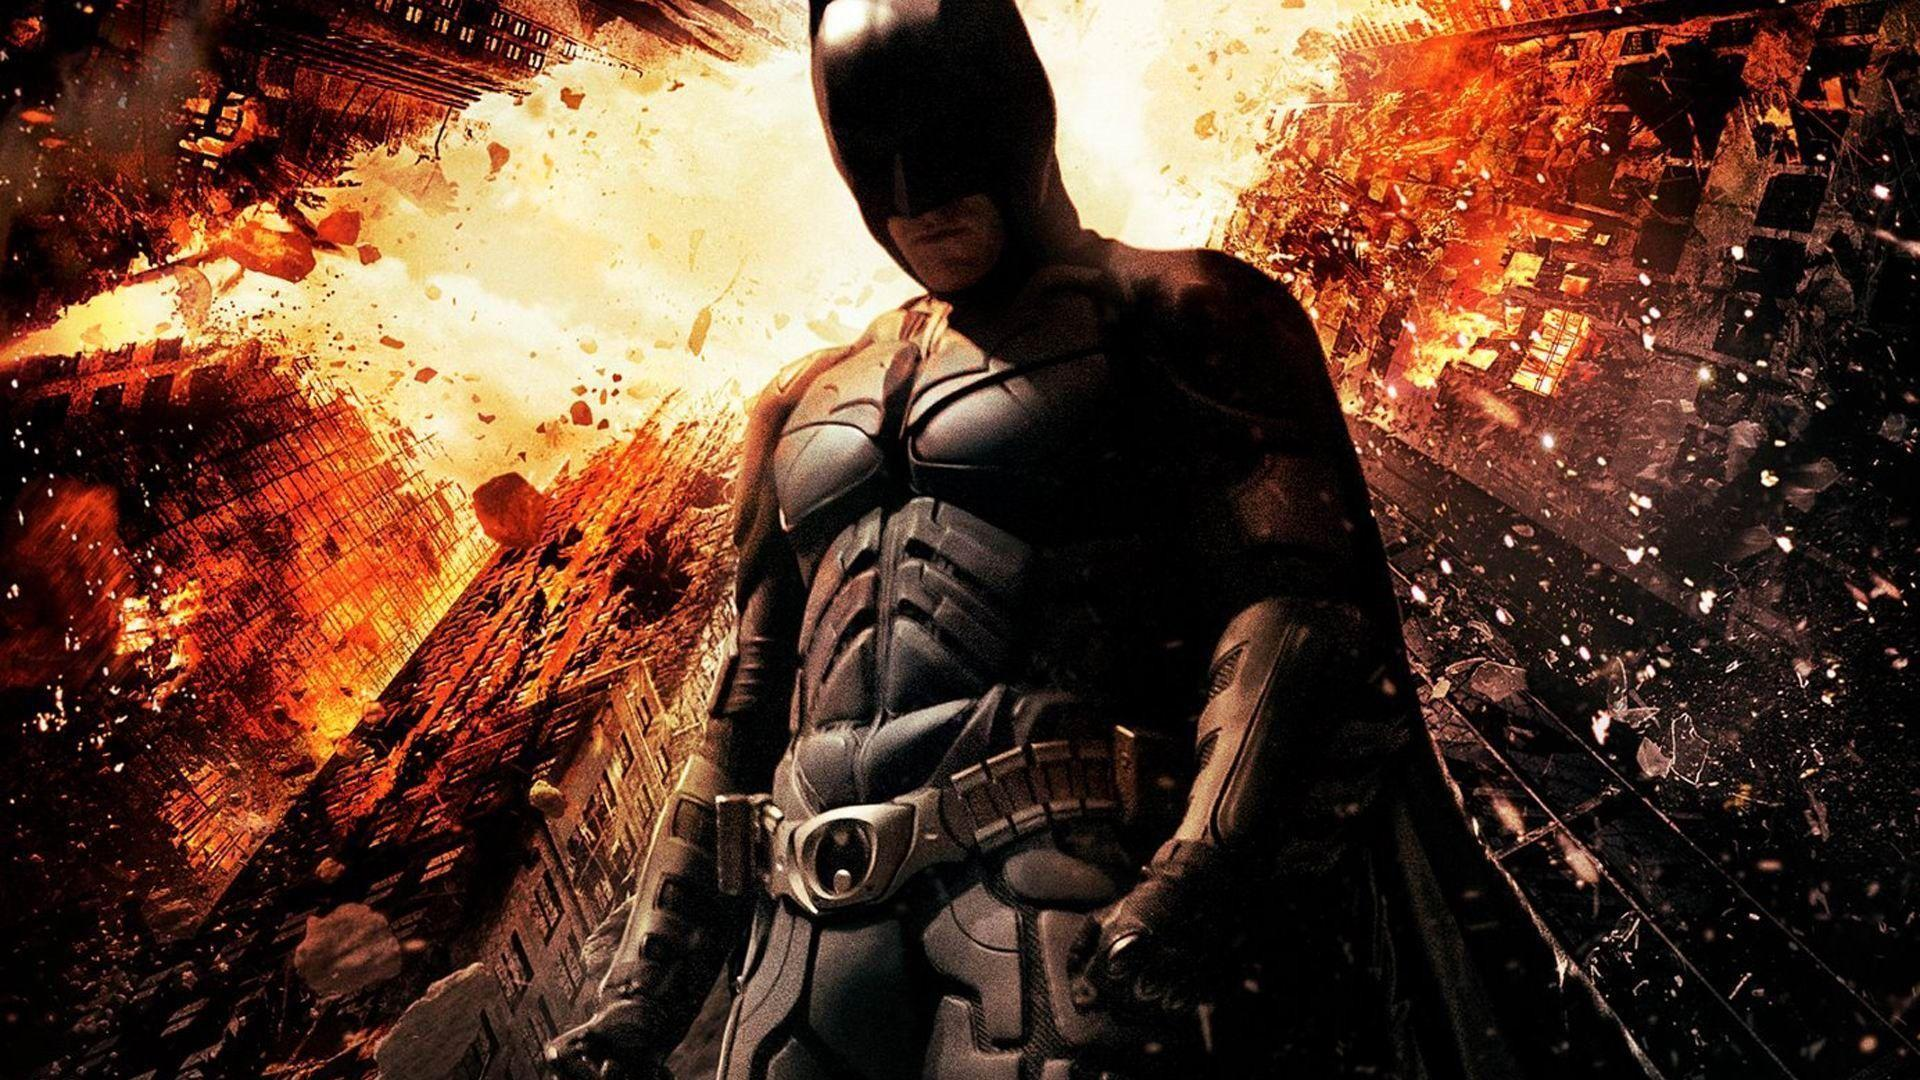 The Dark Knight Rises 2012 Movie HD Wallpapers 06